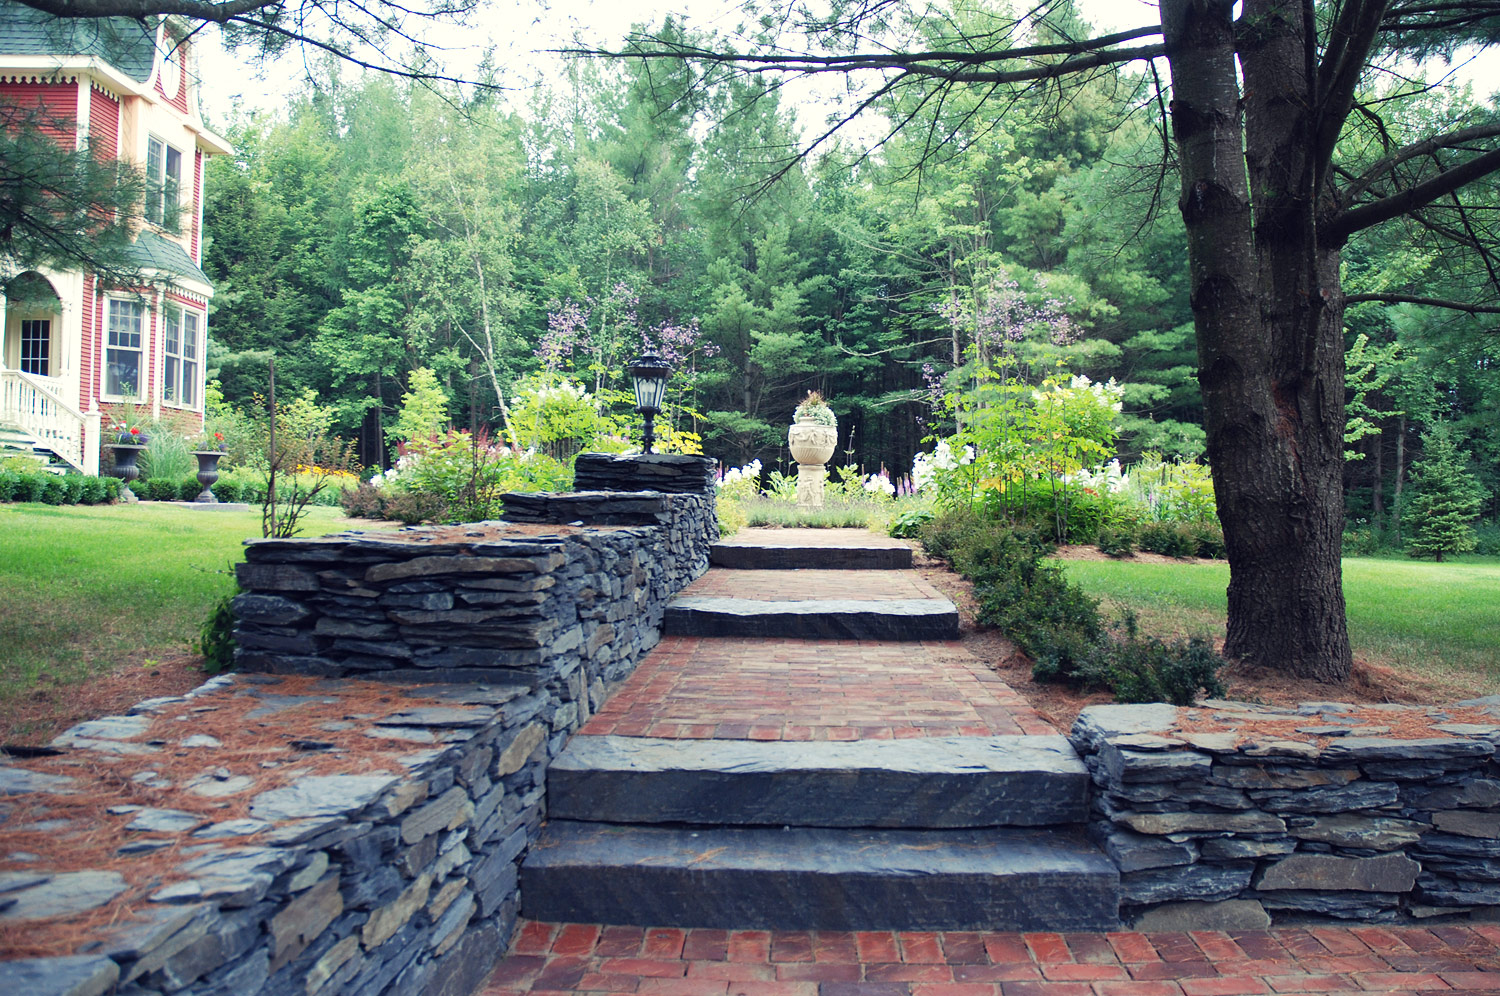 Mat riaux inertes hodgins and associates landscape for Landscape design services